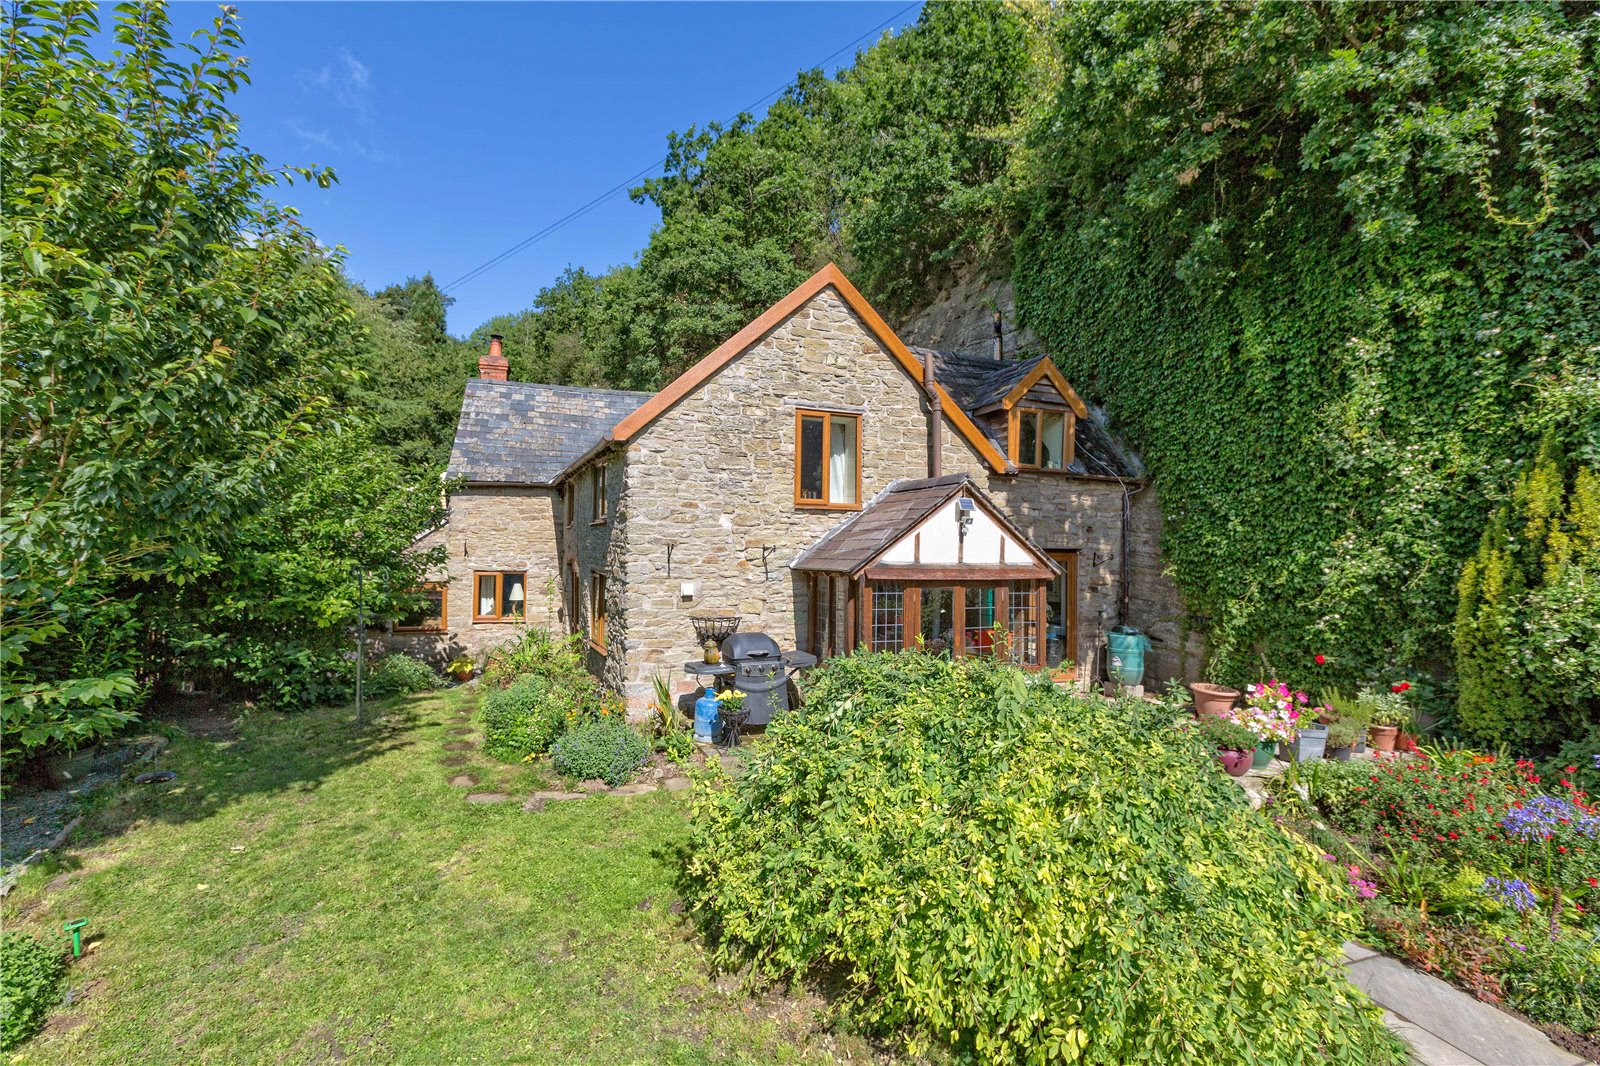 1 Rock Cottage, Bache Mill, Diddlebury, Craven Arms, SY7